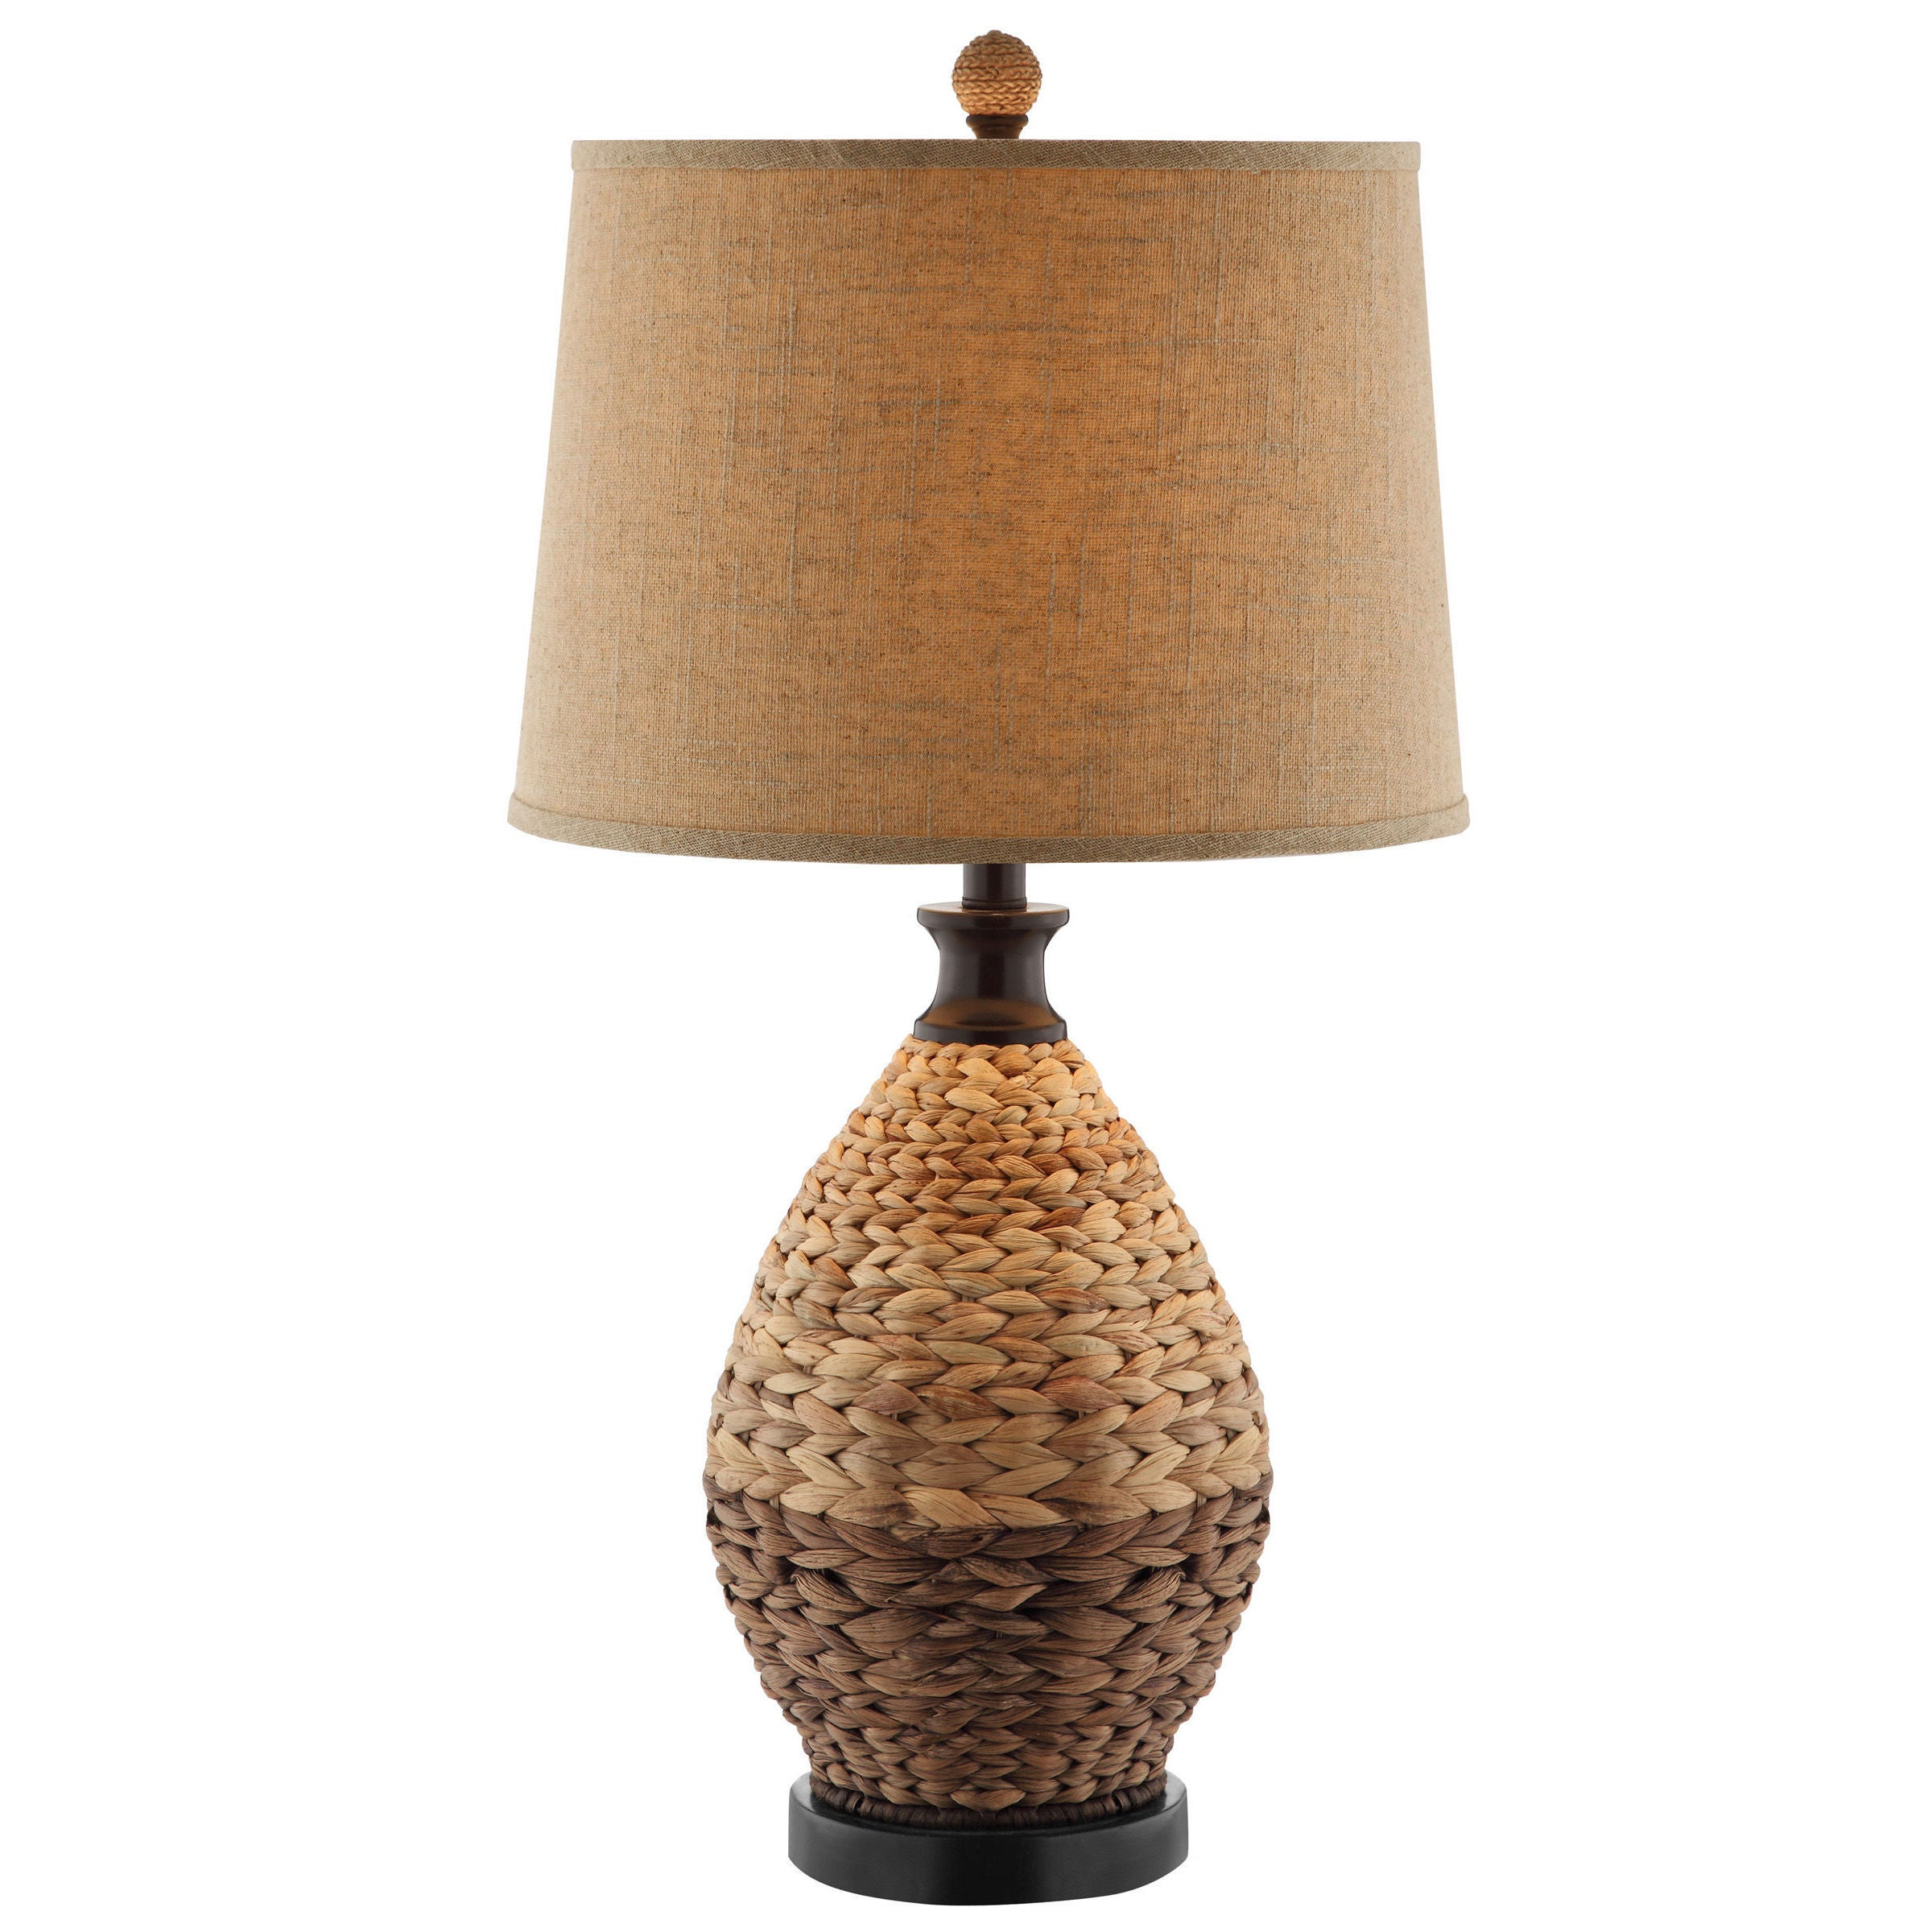 Weston 1 Light Two Tone Rattan Table Lamp On Free Shipping Today 8884066